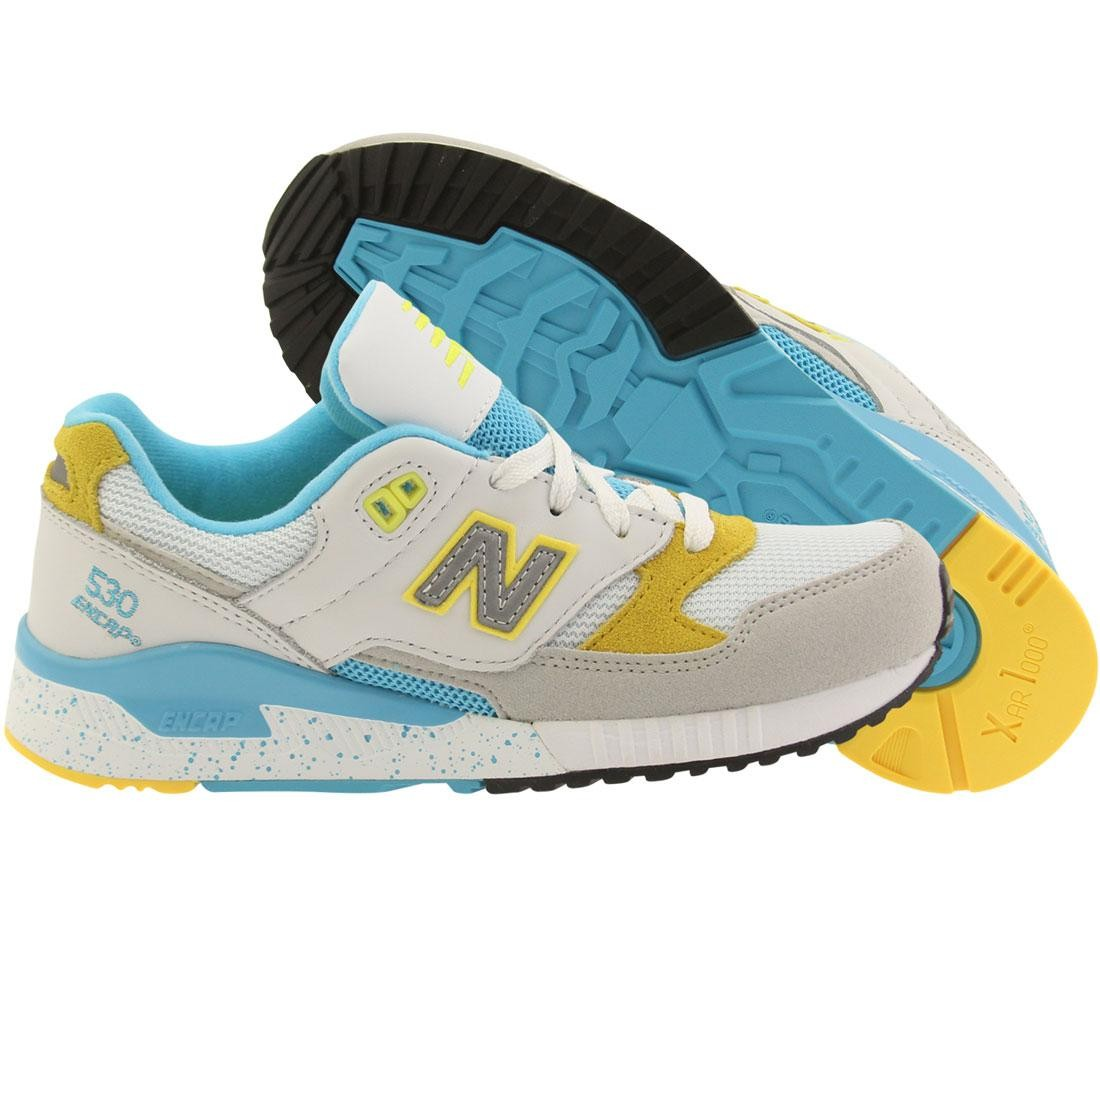 detailed look 5850c c4a6c New Balance Women 530 90s Running Leather W530PSB (gray / white / bayside)